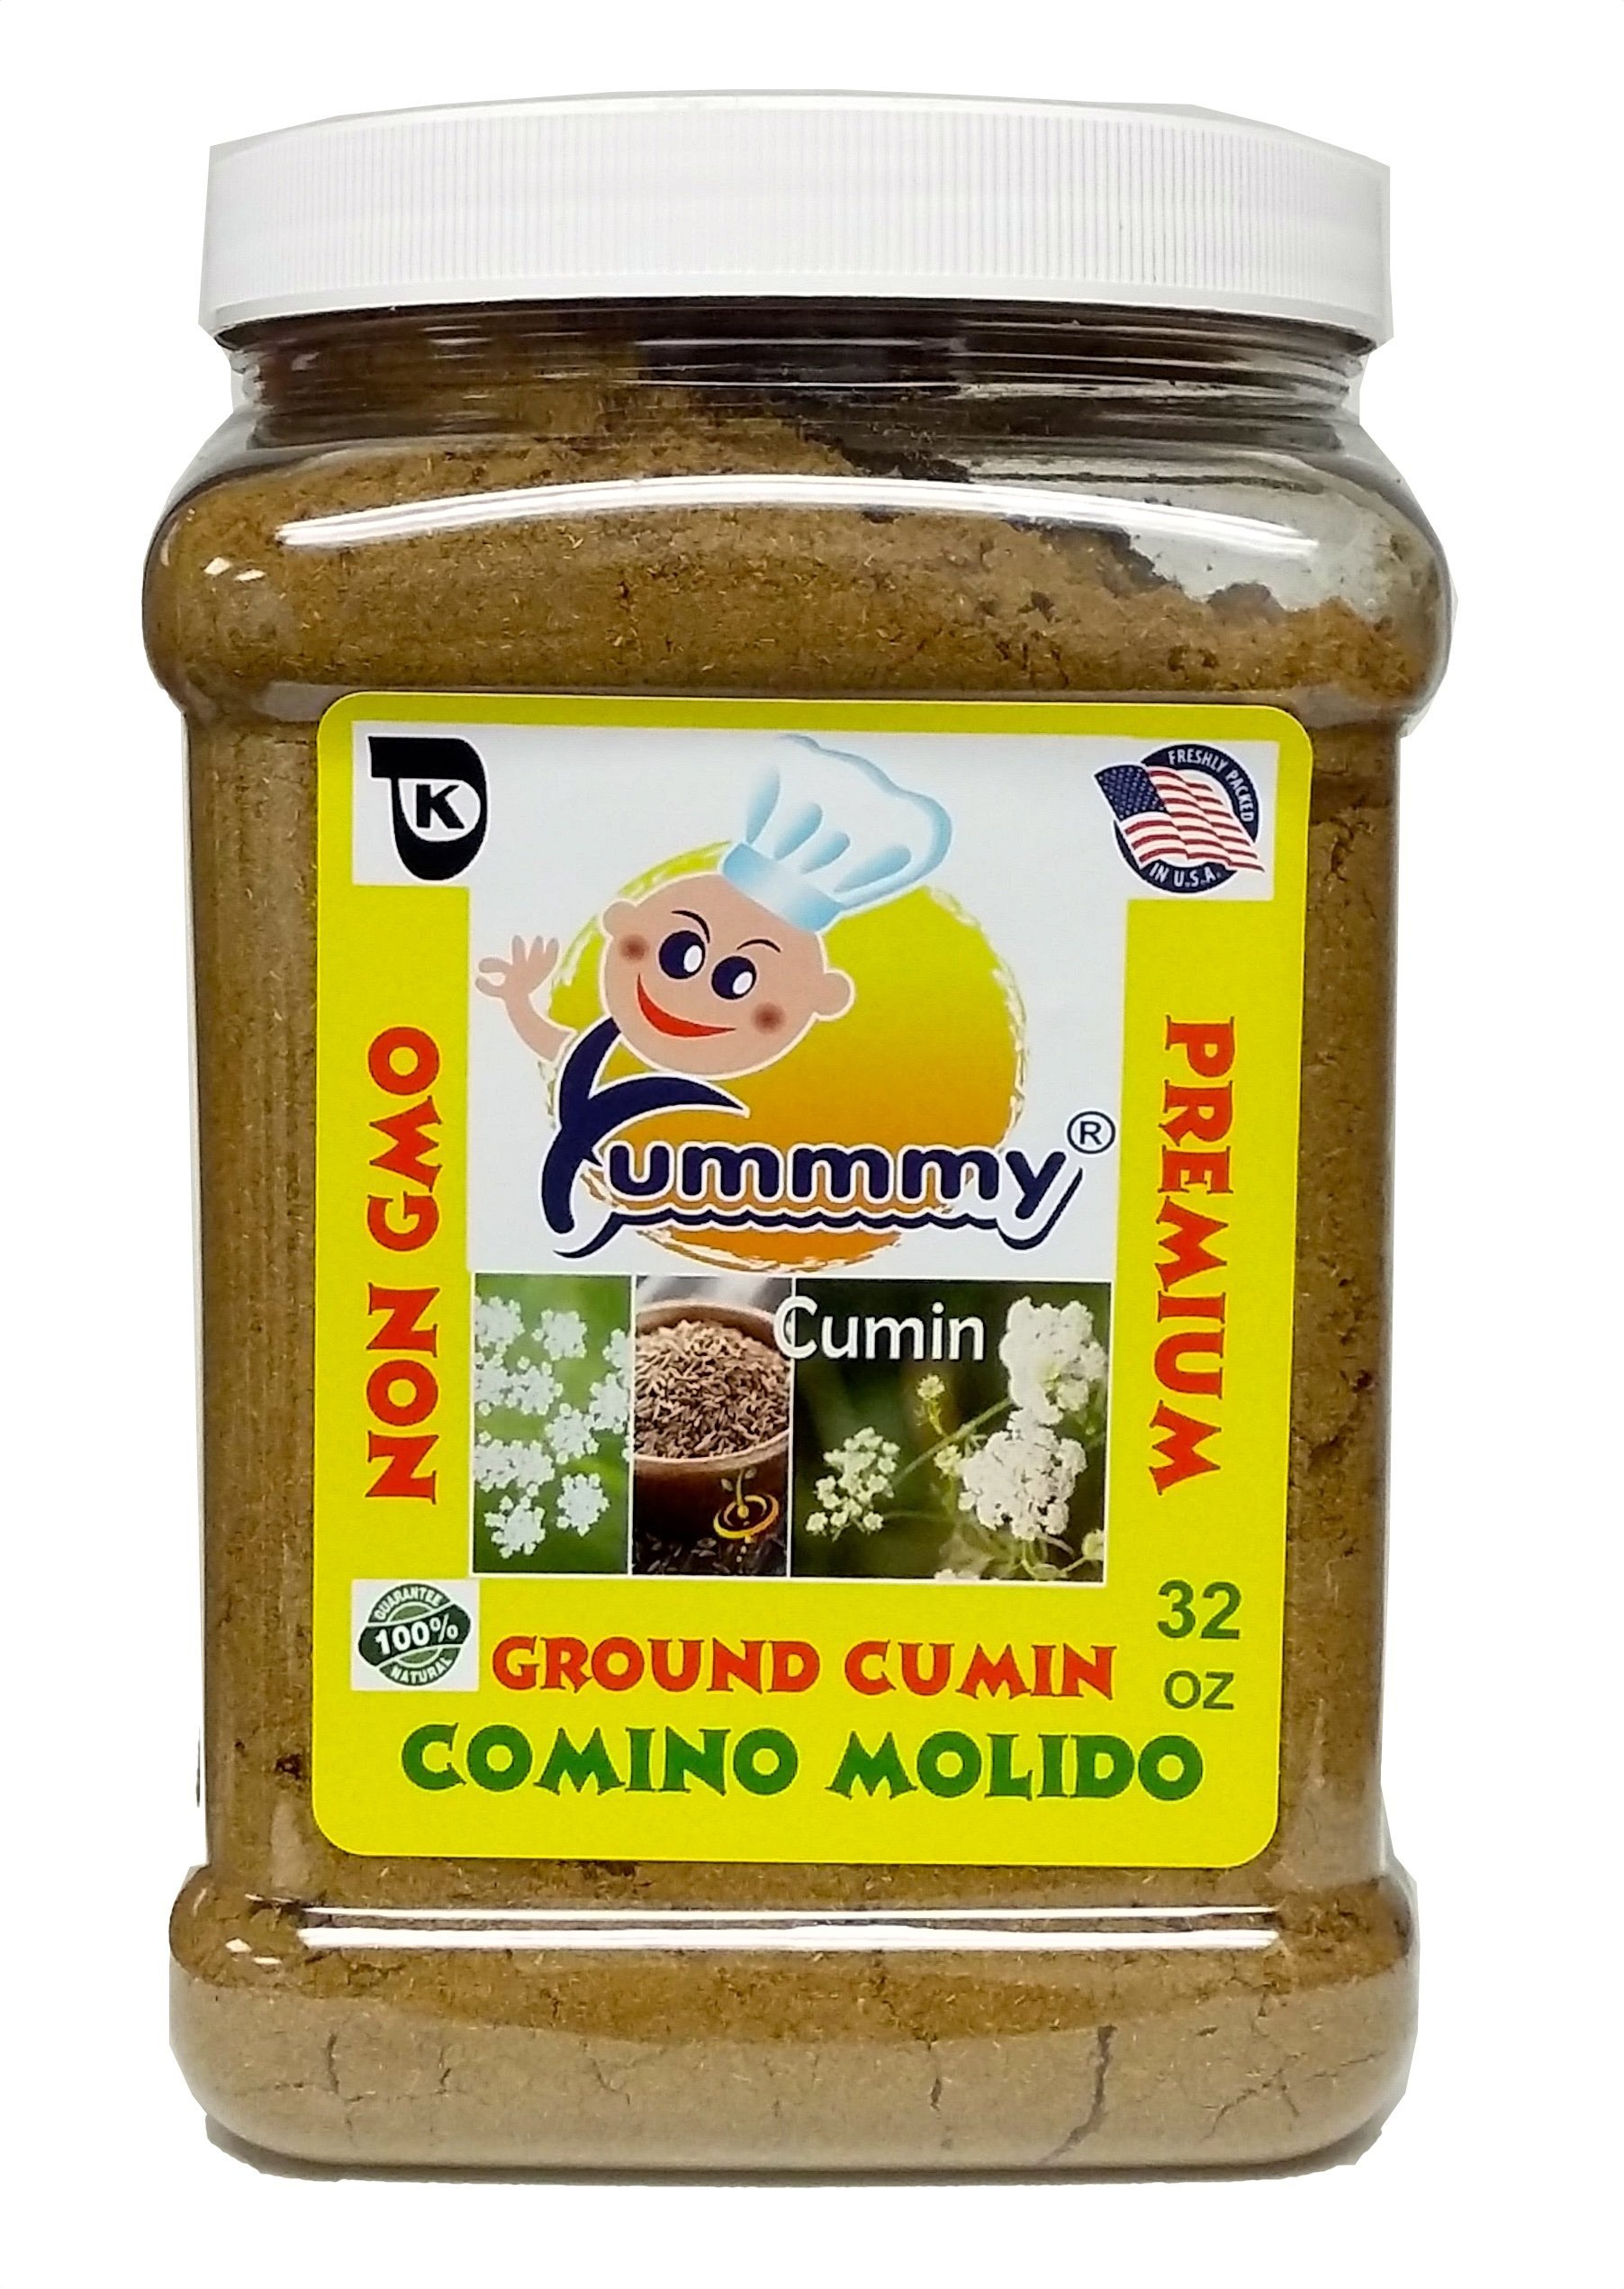 Yummmy Cumin, Ground Cumin 32 oz, Kosher certified, BPA free container